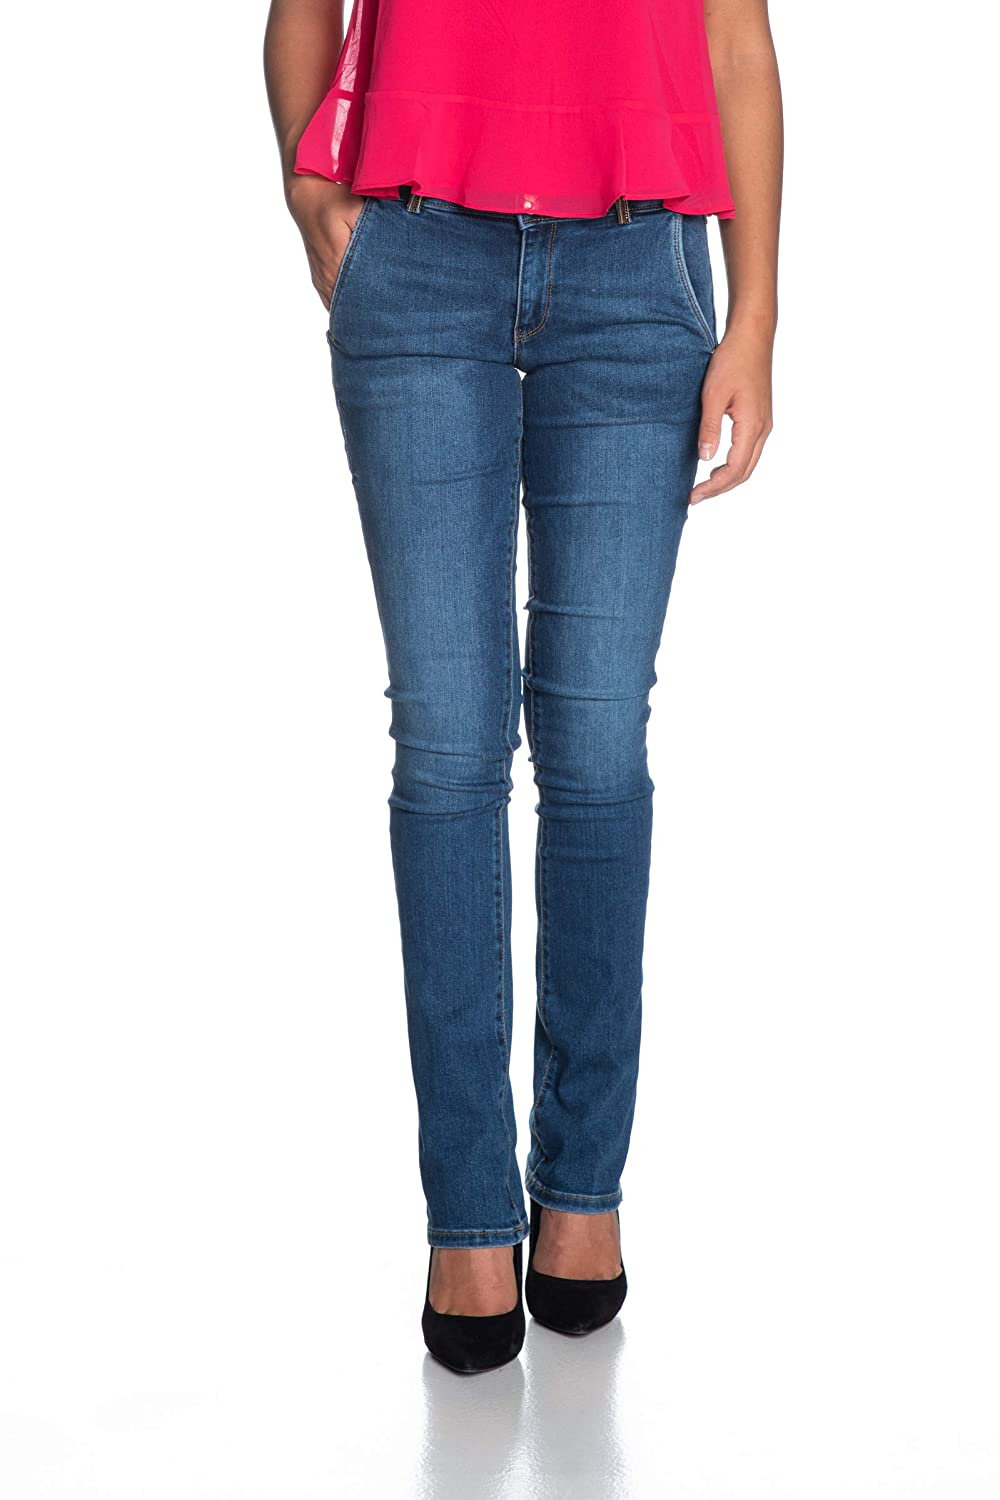 Guess Jeans Donna W93A55-D3N51 Autunno//Inverno